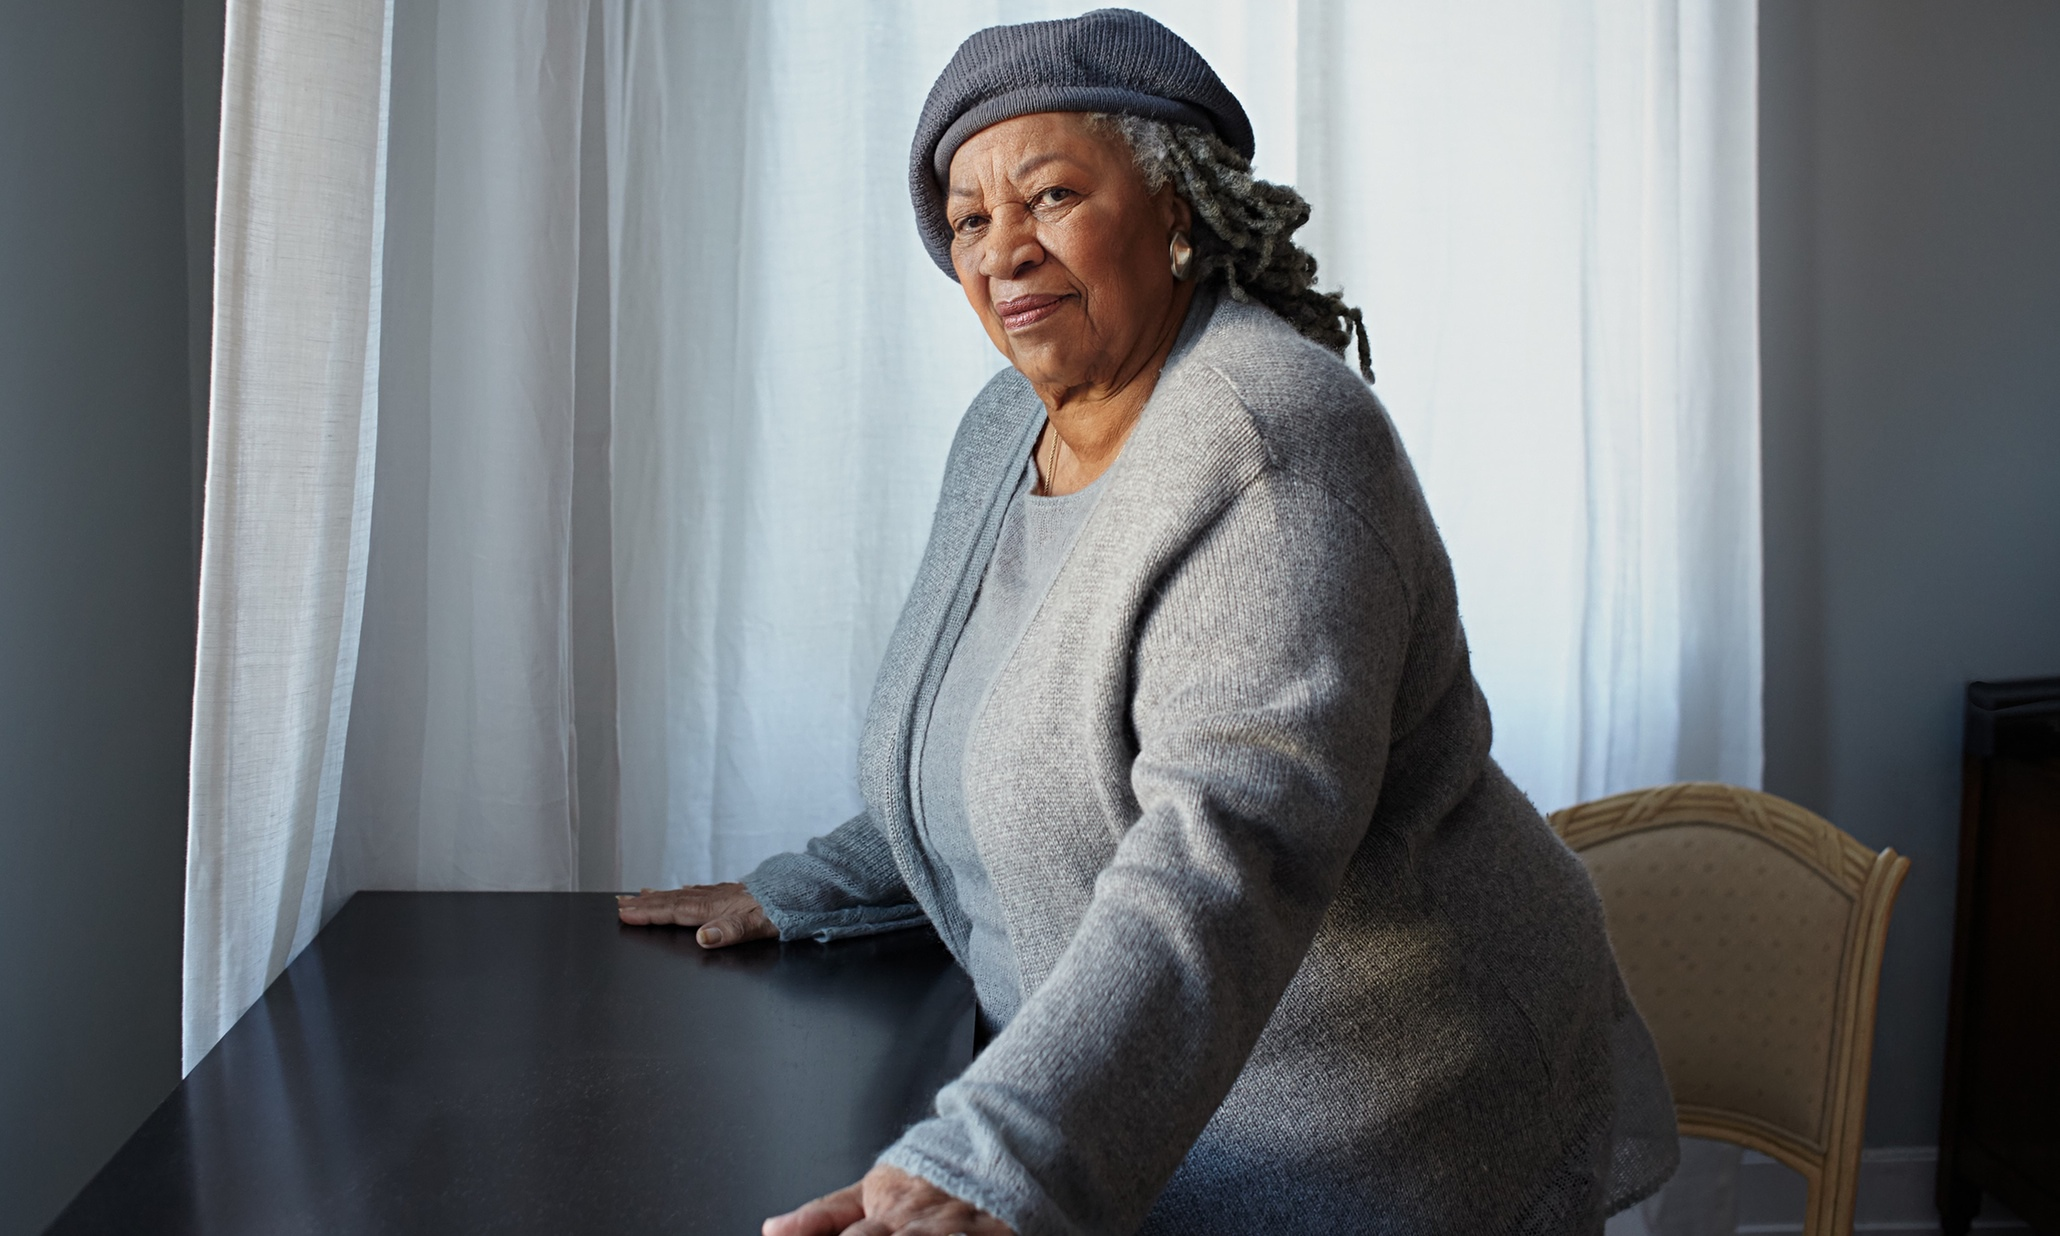 recitifa s toni morrison Toni morrison has 162 books on goodreads with 1169329 ratings toni morrison's most popular book is beloved.